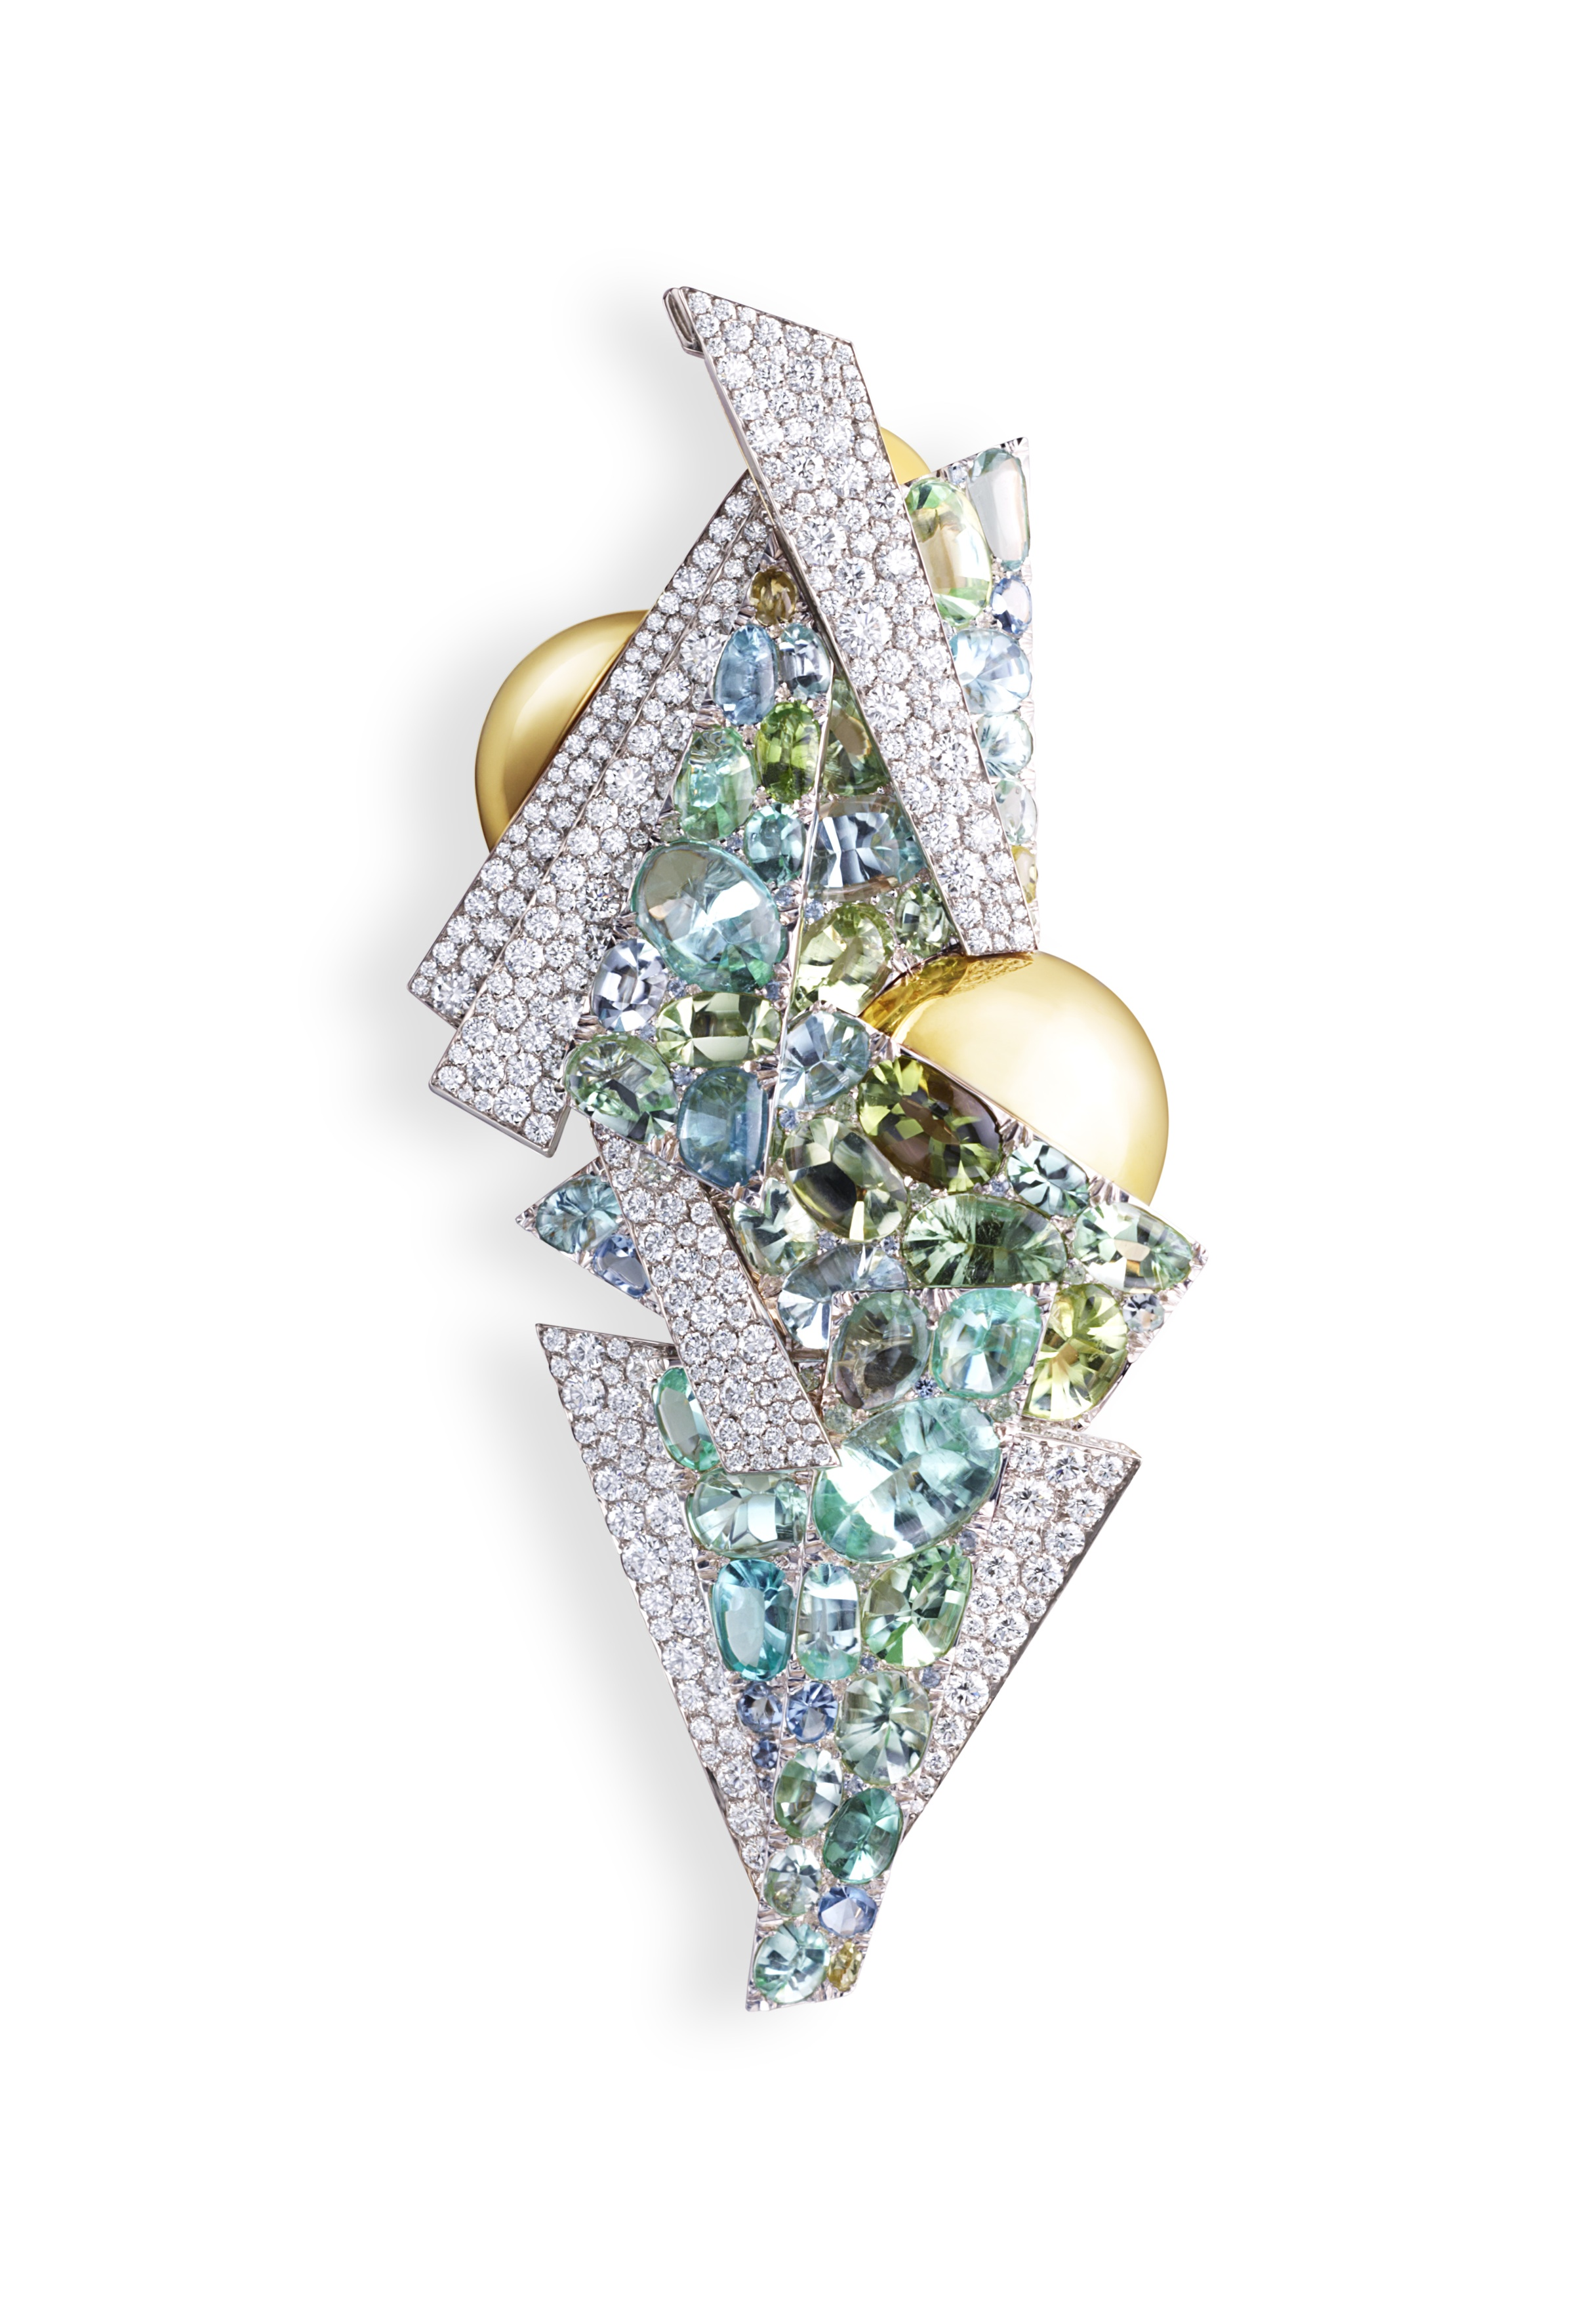 The Fabergé jewel, who's story inspired these drawings